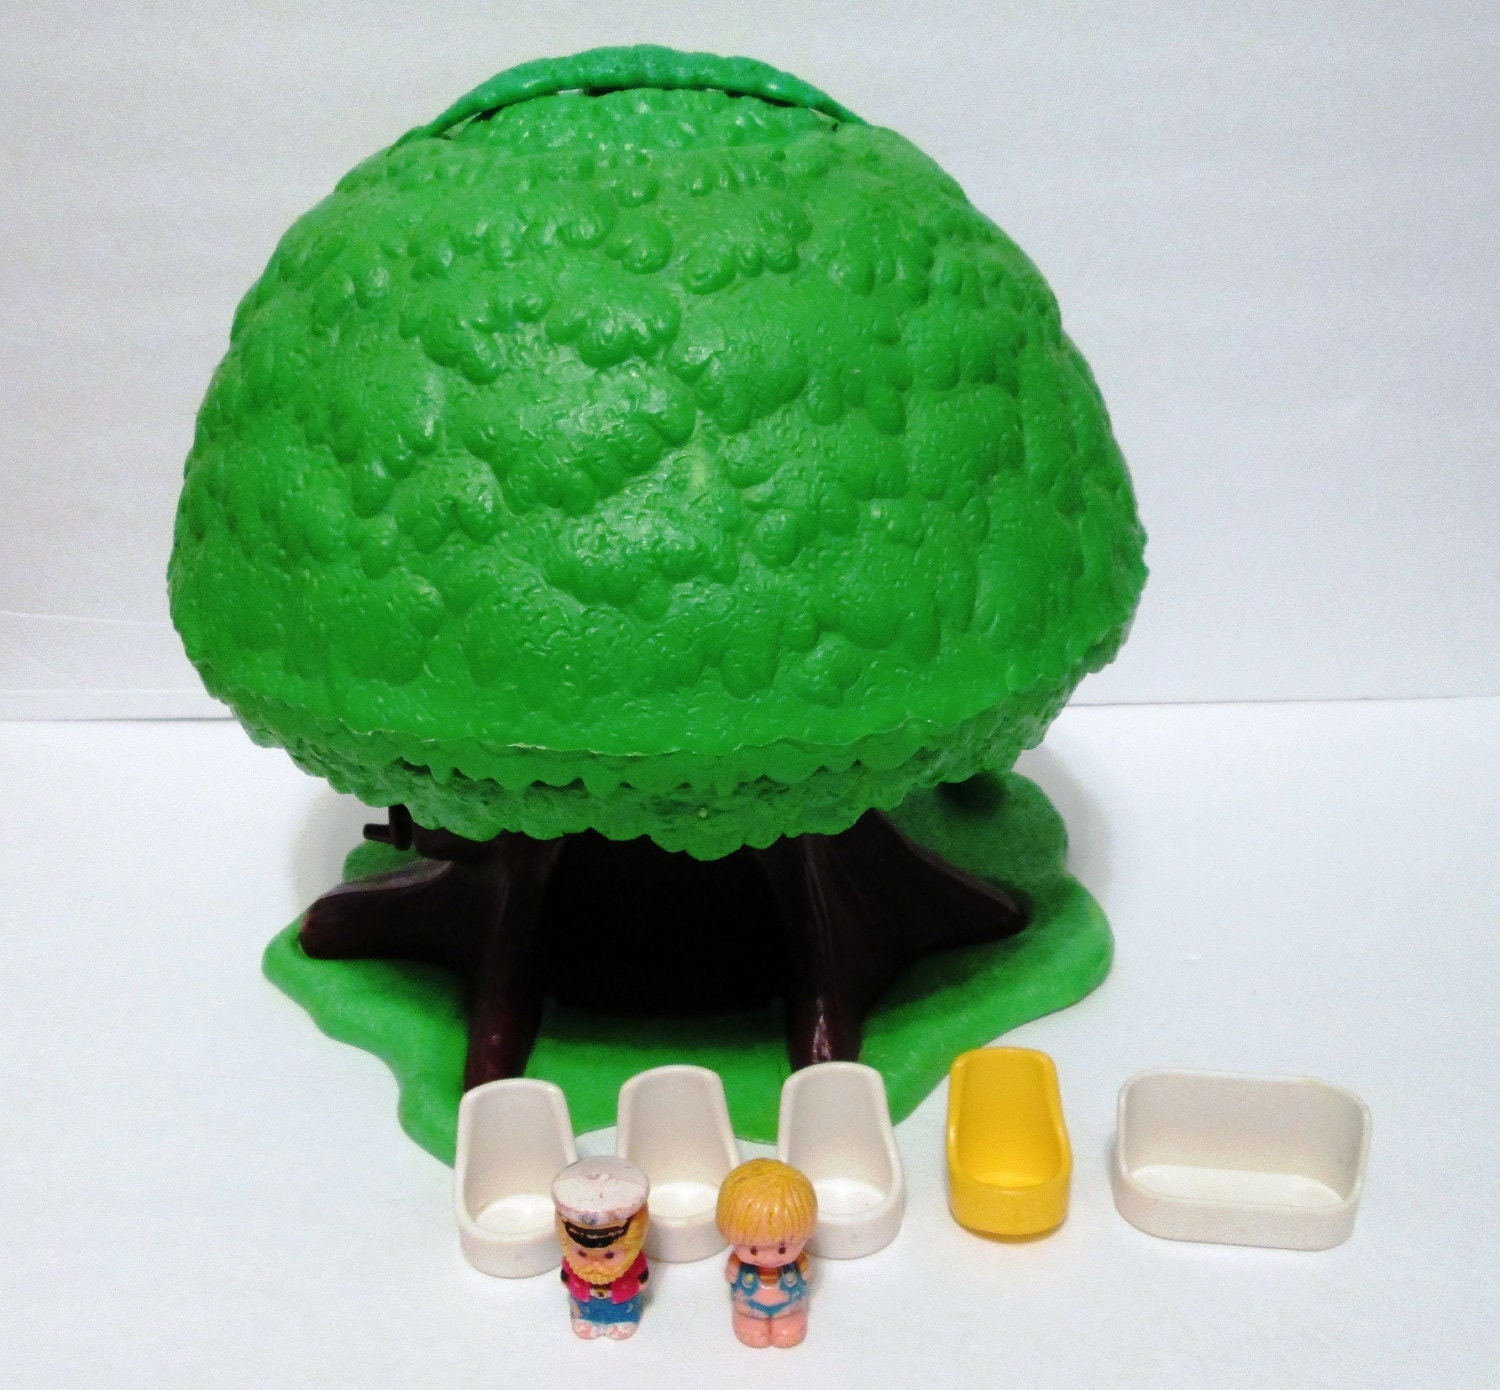 Tlc Vintage Toy 1970s Kenner Tree Tots Family Treehouse With